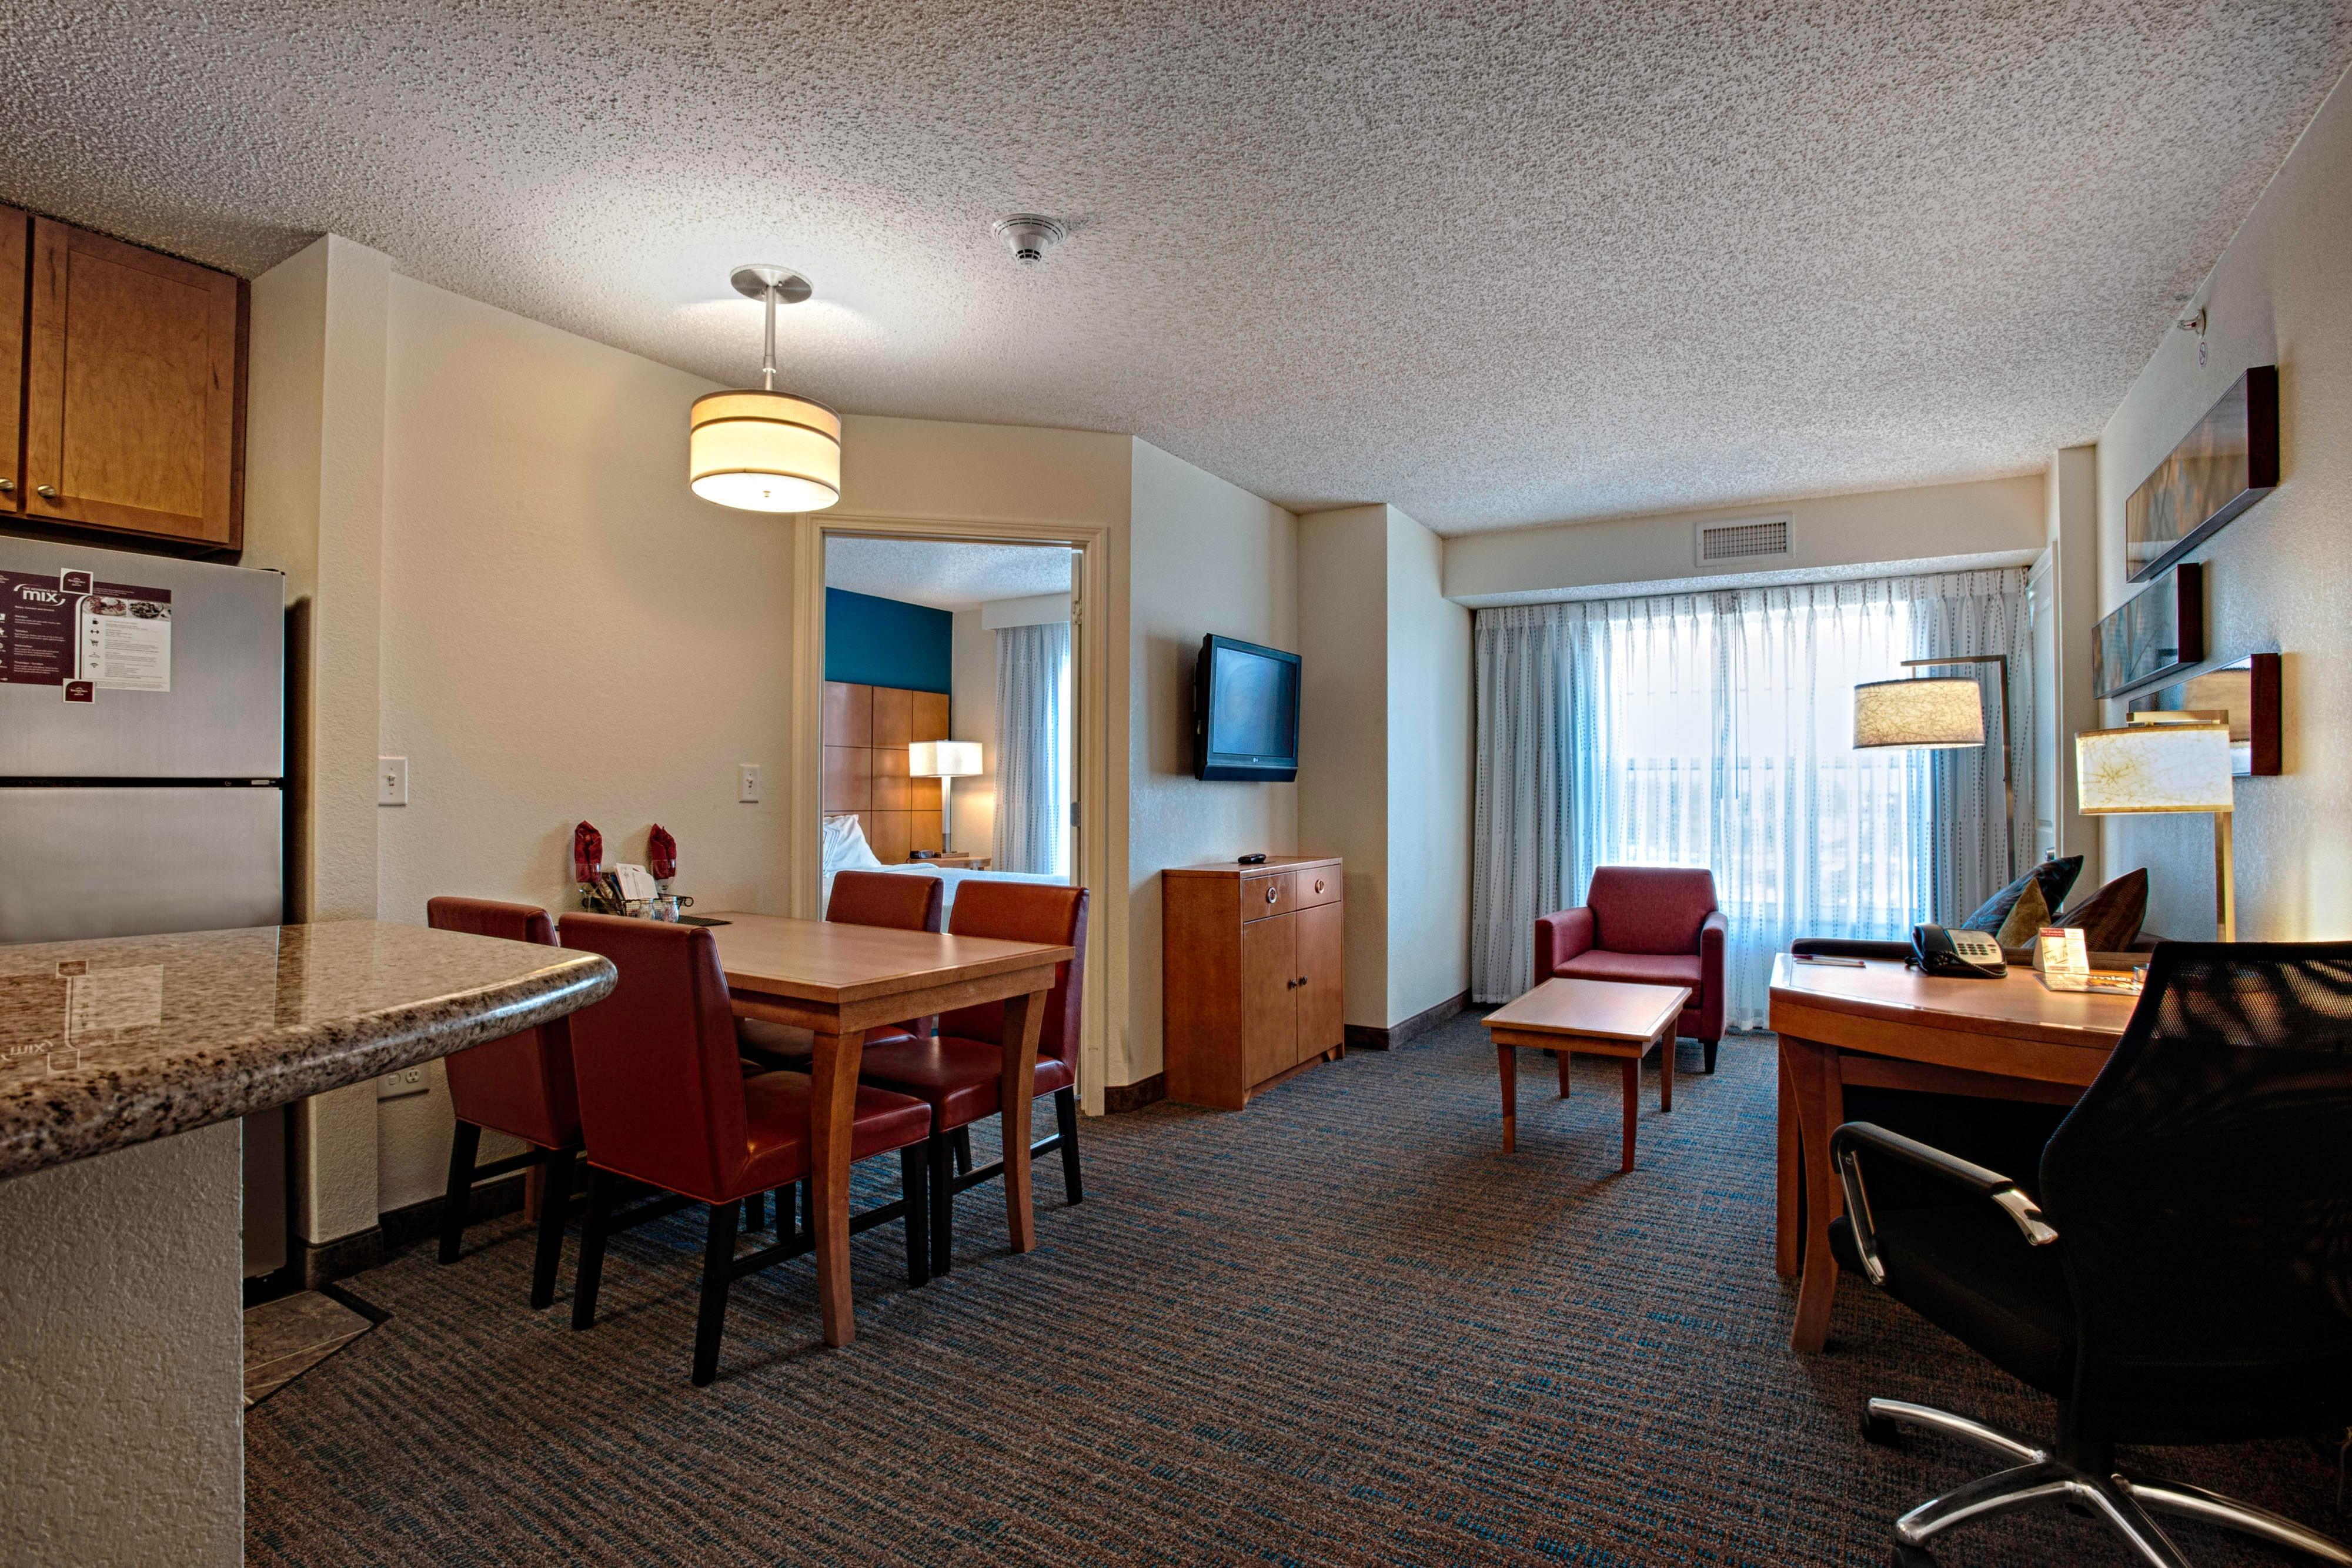 inn suite hotels pet bedroom hor davenport w friendly rooms in suites clsc free hotel ia residence mliri orleans wifi new